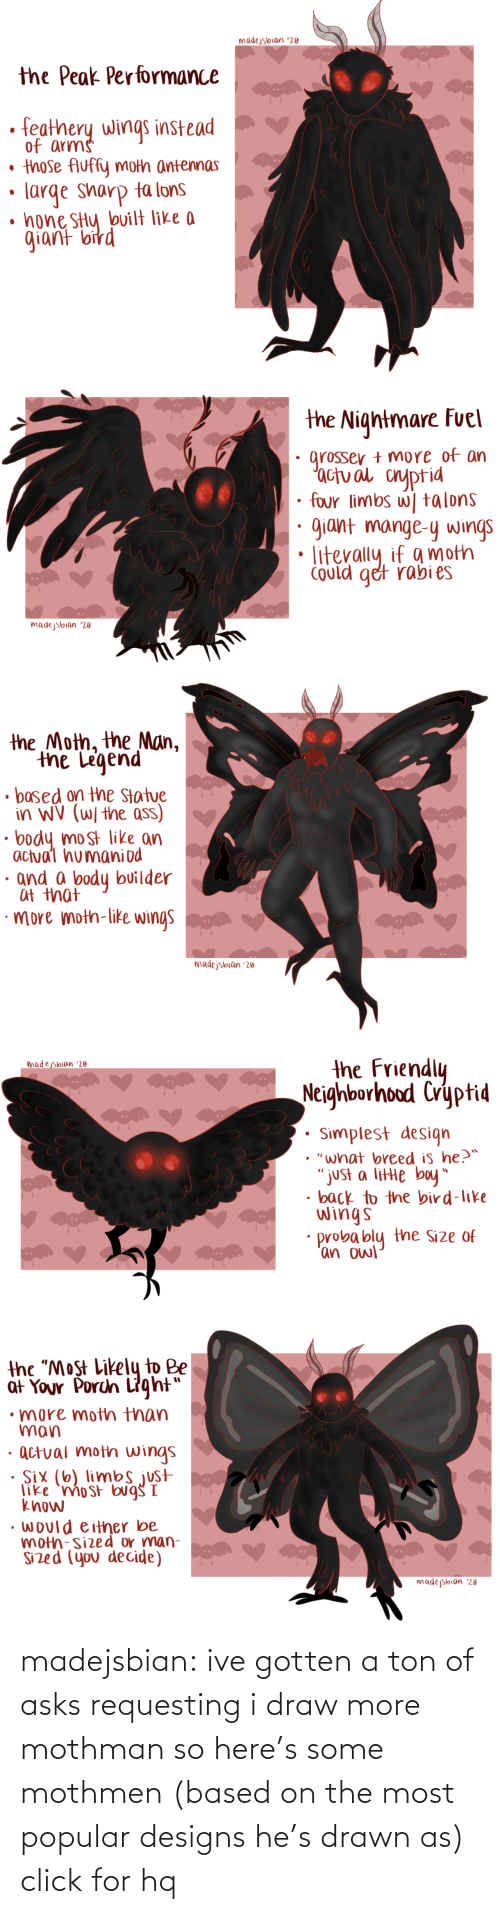 "Most: madejsbian '20  the Peak Performance  feathery wings instead  of arms  • those Auffy moth antennas  large sharp ta lons  • hone SHy bvilt like a  giant bird   the Nightmare Fuel  grosser + more of an  'actual cnyptid  four limbs w| talons  giant mange-y wings  Could get rabi es  madejsbian '20   the Moth, the Man,  the Legend  • based on the Statue  in WV (W/ the ass)  body most like an  actual humaniod  · and a body builder  at that  ·more moth-like wings  madejsbian '20   the Friendly  Neighborhood Cryptid  madejsbian '20  Simplest design  • ""what breed is he?™  ""just a litte boy""  • back to the bird-like  wings  probably the Size of  'an owl   the ""Most Likely to Be  at Your Porch Light""  •more moth than  man  · actual moth wings  · Six (6) limbs just  like 'mo st bug I  know  • would either be  moth-sized or man-  Sized (you decide)  madejsbian '20 madejsbian: ive gotten a ton of asks requesting i draw more mothman so here's some mothmen (based on the most popular designs he's drawn as)